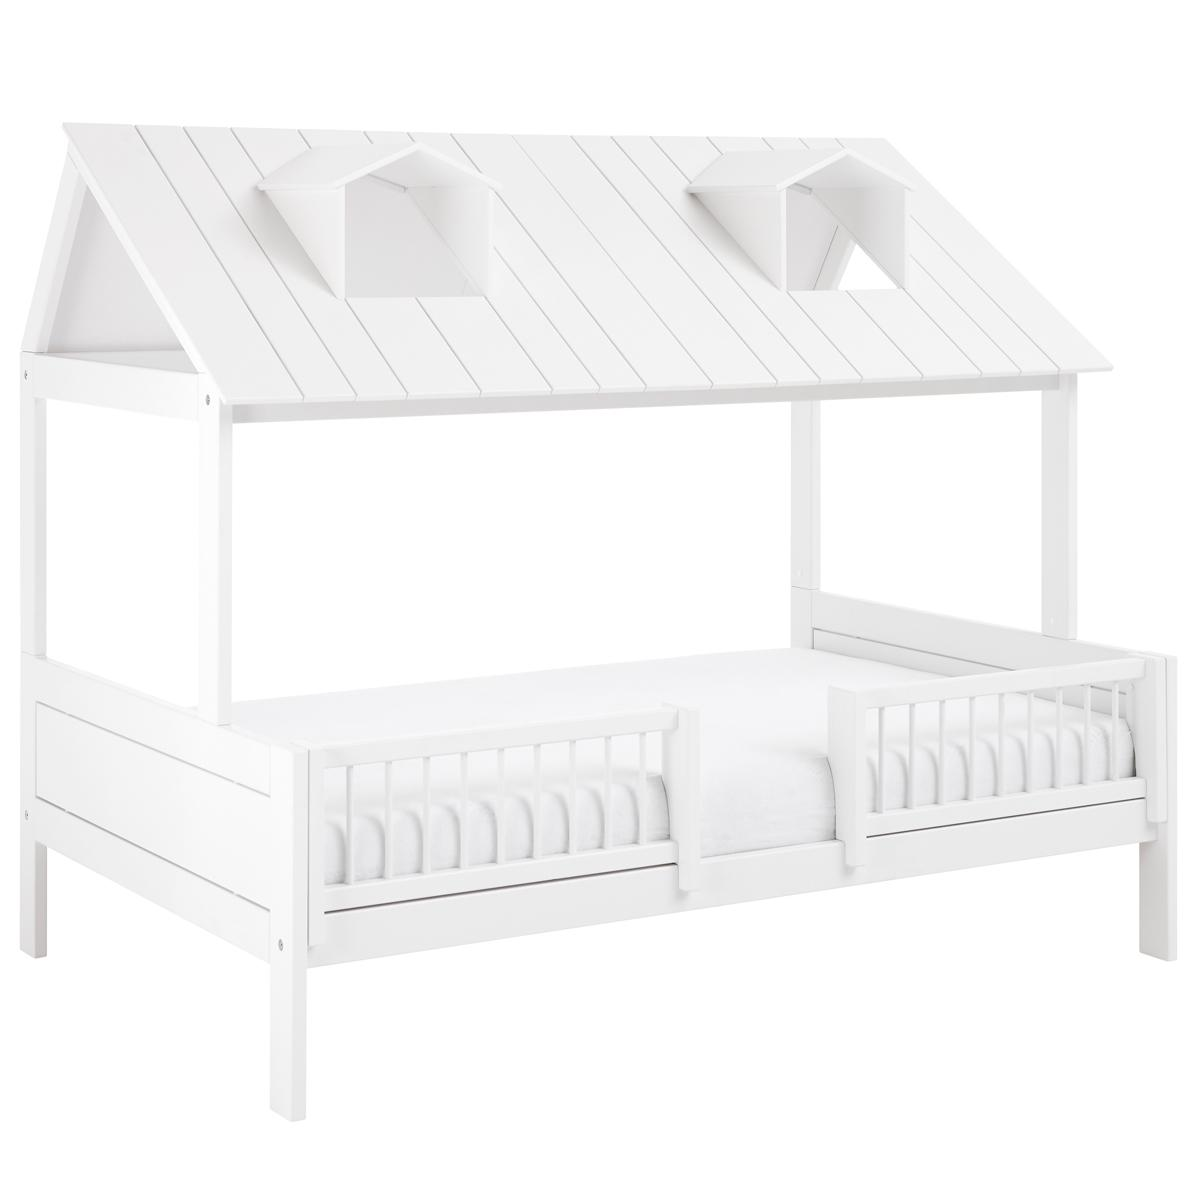 Cama 120x200cm BEACH HOUSE Lifetime blanco